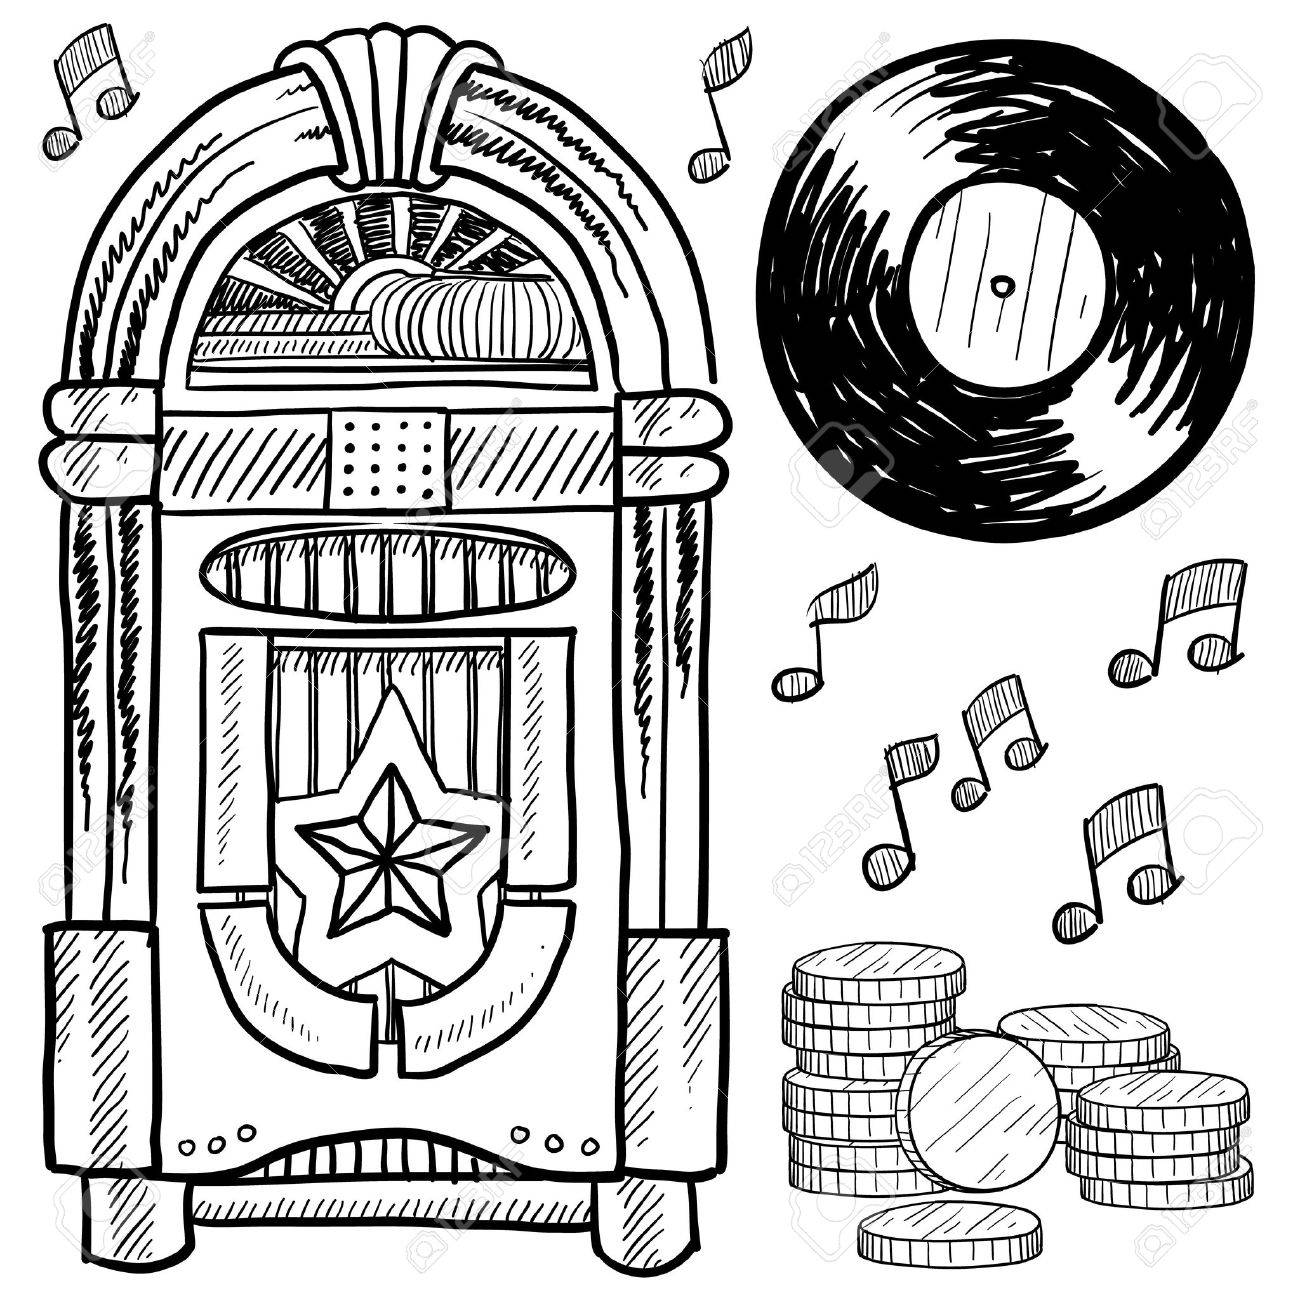 Doodle style retro jukebox with vinyl record, coins, and musical